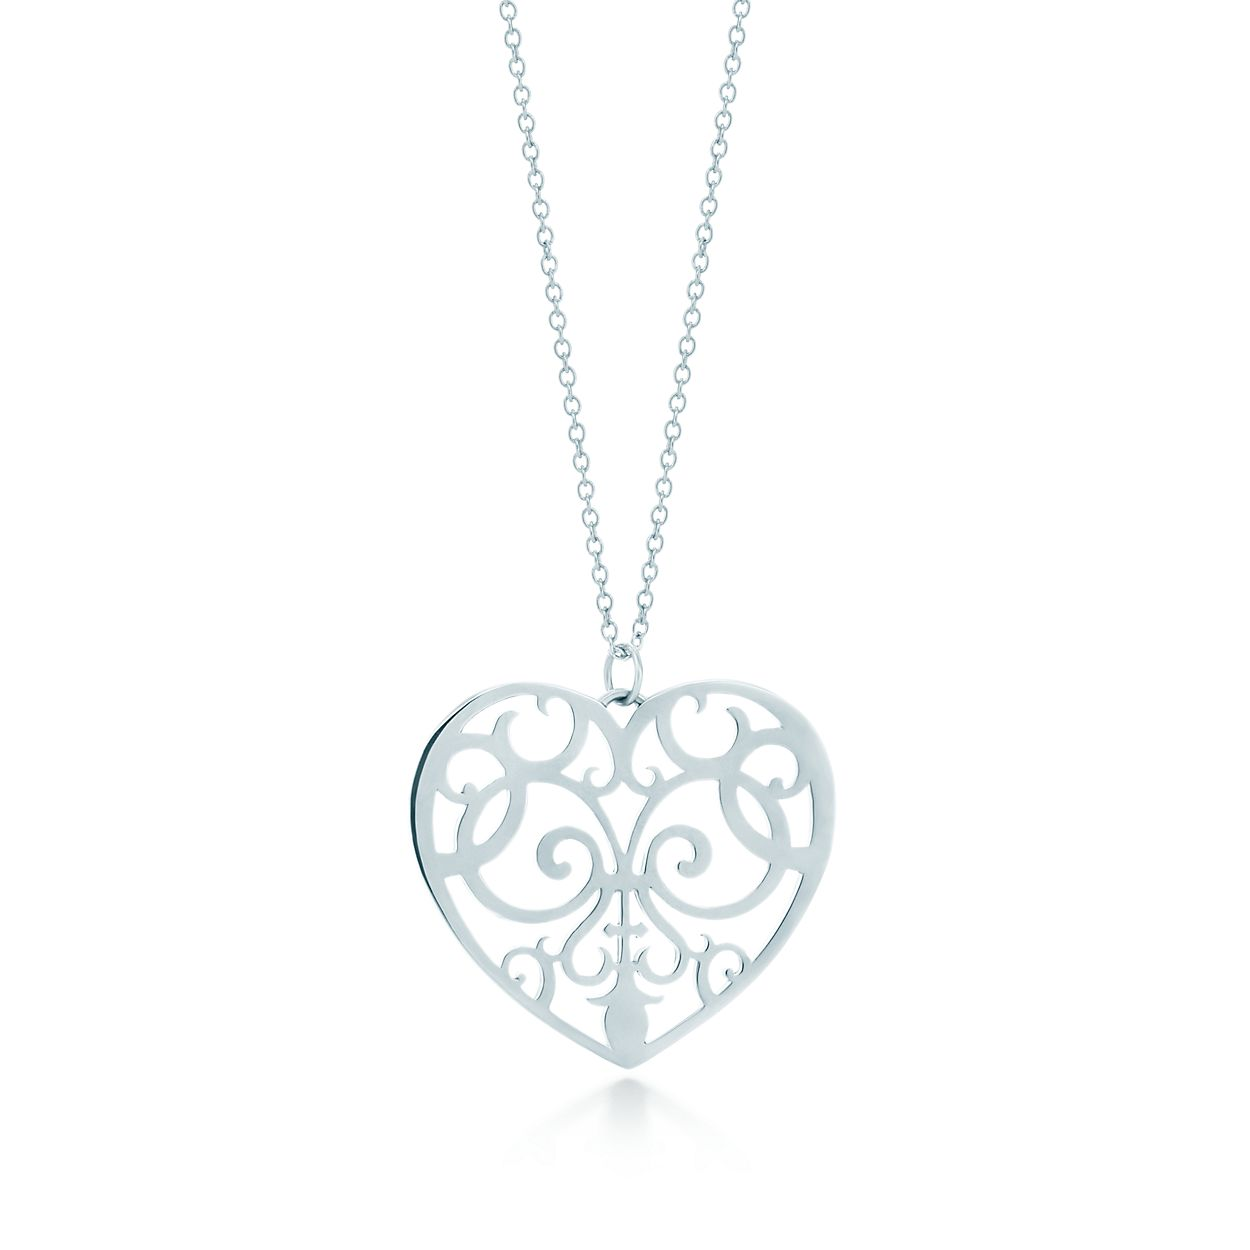 Tiffany enchant heart pendant in sterling silver large tiffany enchantheart pendant tiffany enchantheart pendant audiocablefo Light gallery